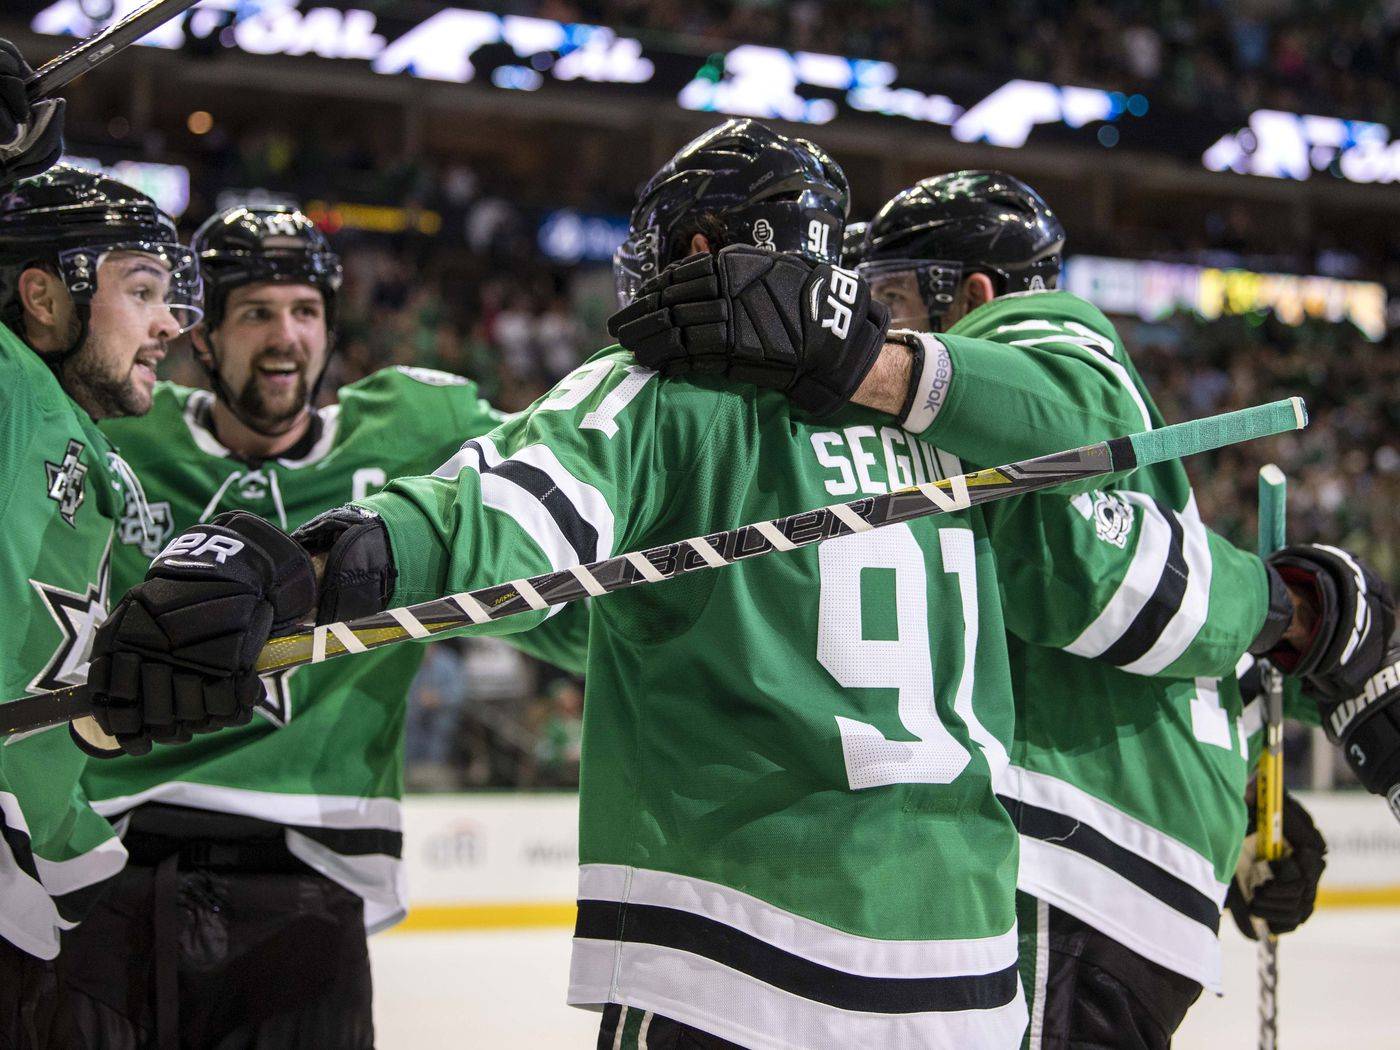 ef918fb8365 Tyler Seguin Notches Gordie Howe Hat Trick In Stars Win Over Avalanche